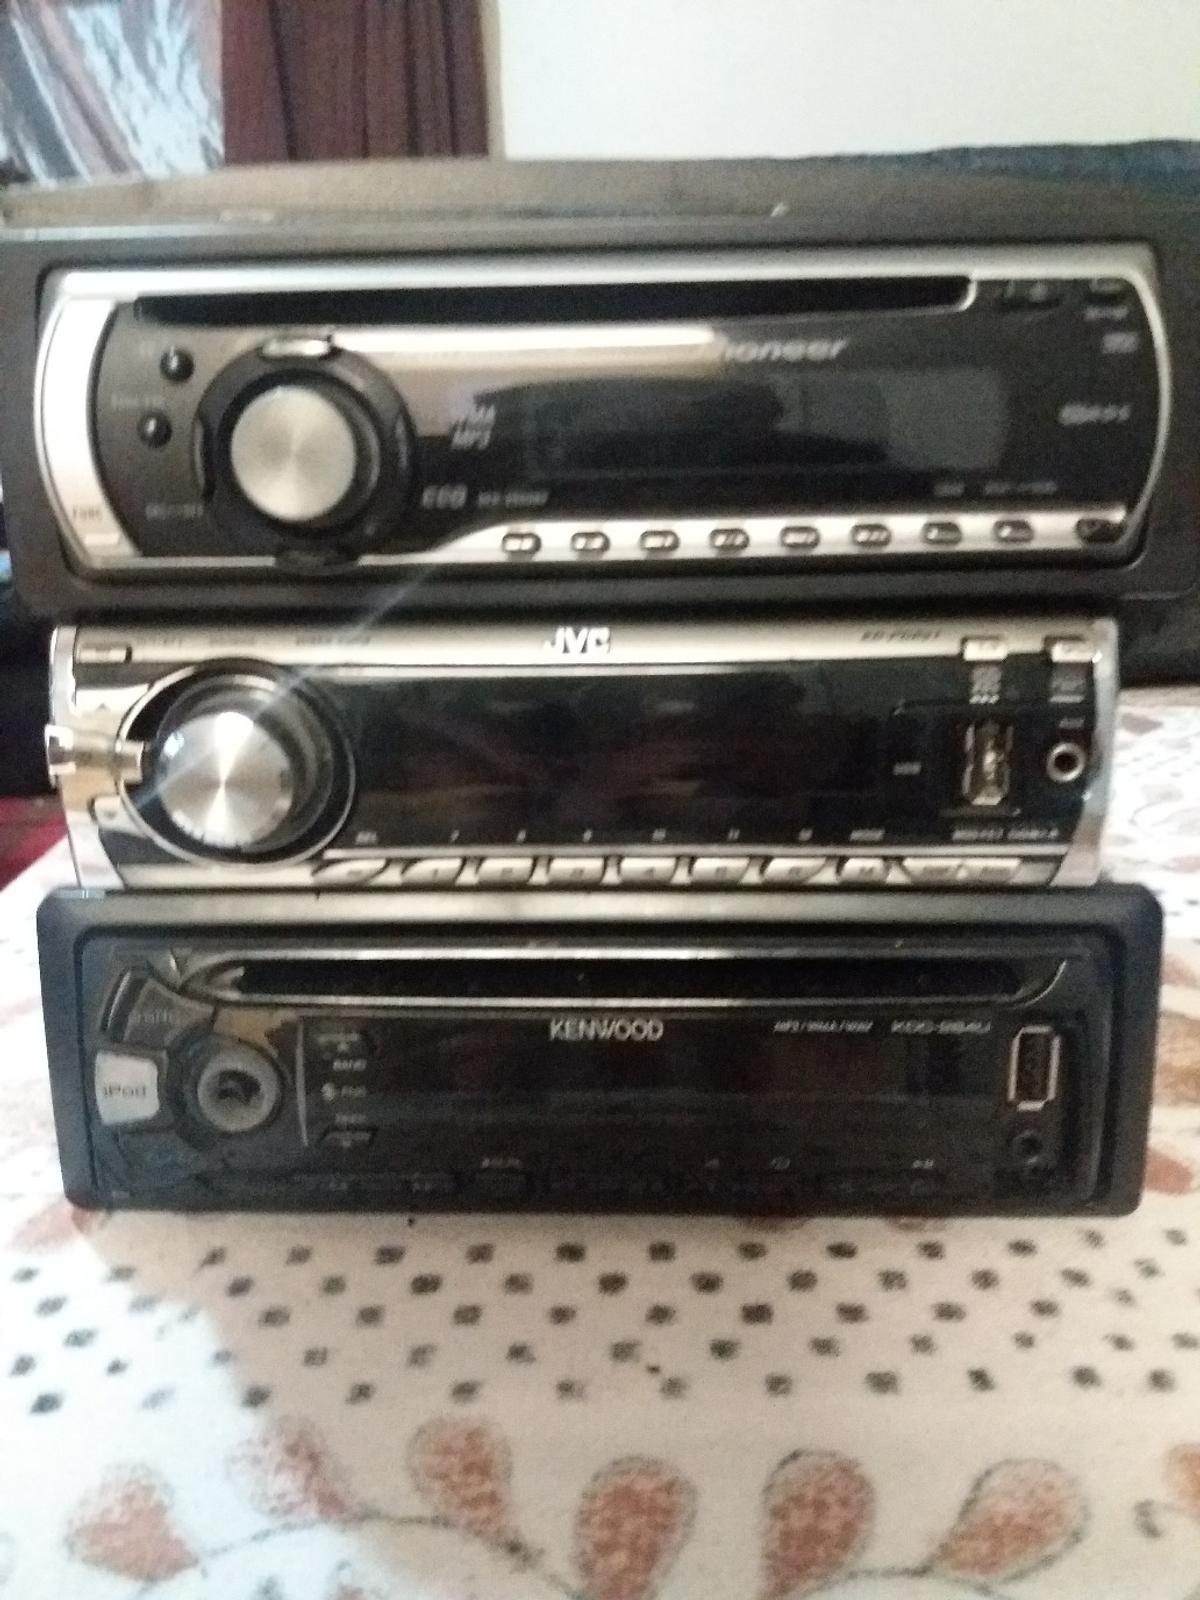 job lot £40 ONO  X3 CAR CD PLAYER.  1X PIONEER CD PLAYER 1X JVC CD PLAYER/AUX/USB 1X KENWOOD CD PLAYER/AUX/USB  Can deliver for fuel if not too far  MAY CONSIDER SWAP FOR PHONE & HOME DVD PLAYER  NO TIME WASTERS PLEASE  OPEN TO OFFERS